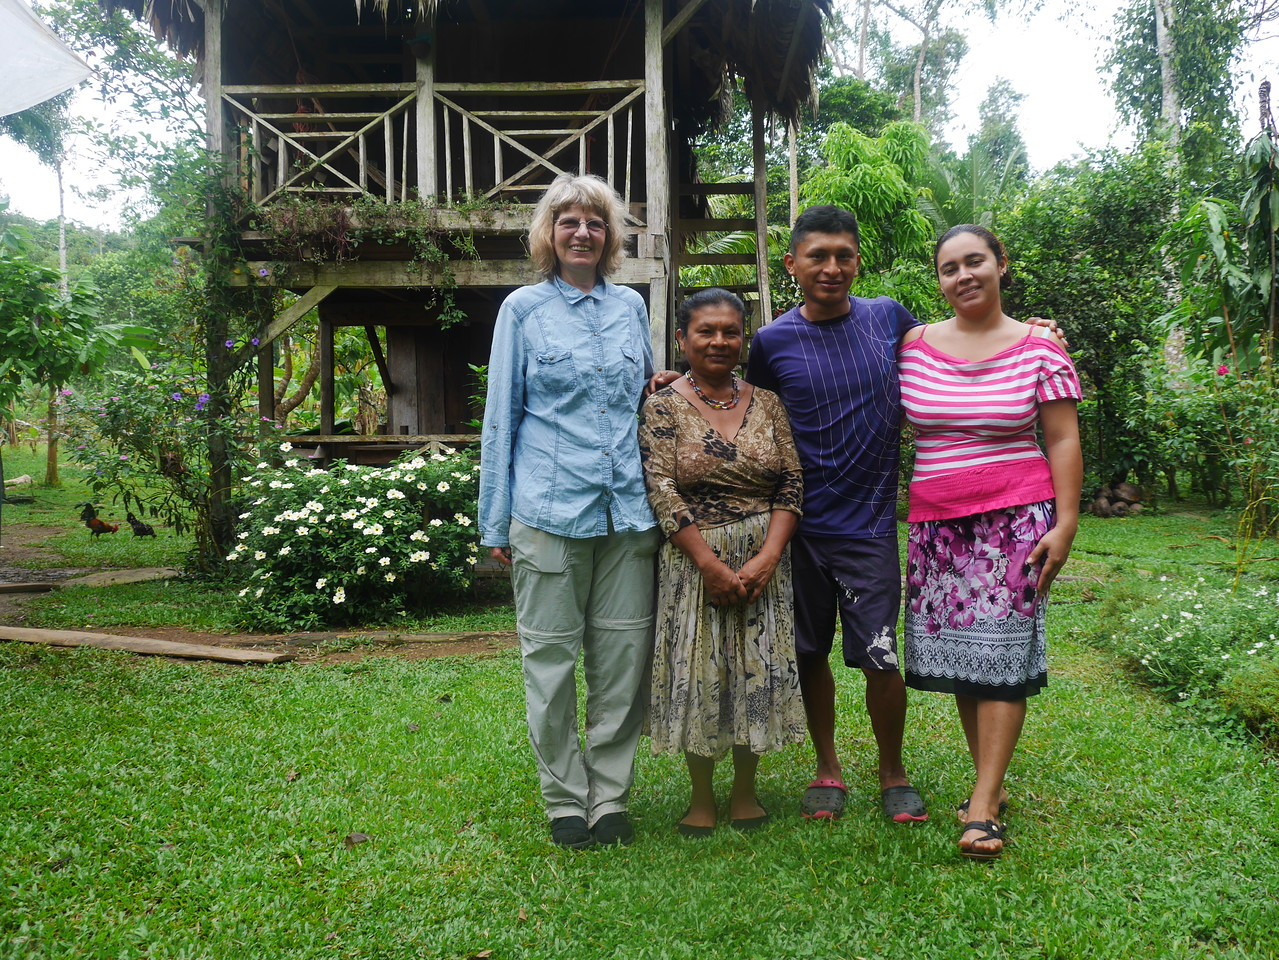 We spent 3 days at the wonderful Soposo Lodge  visiting the Naso people near Amistad International Park. Here Rena poses with Virginia, her son Max, who was our guide, and his wife Christina.